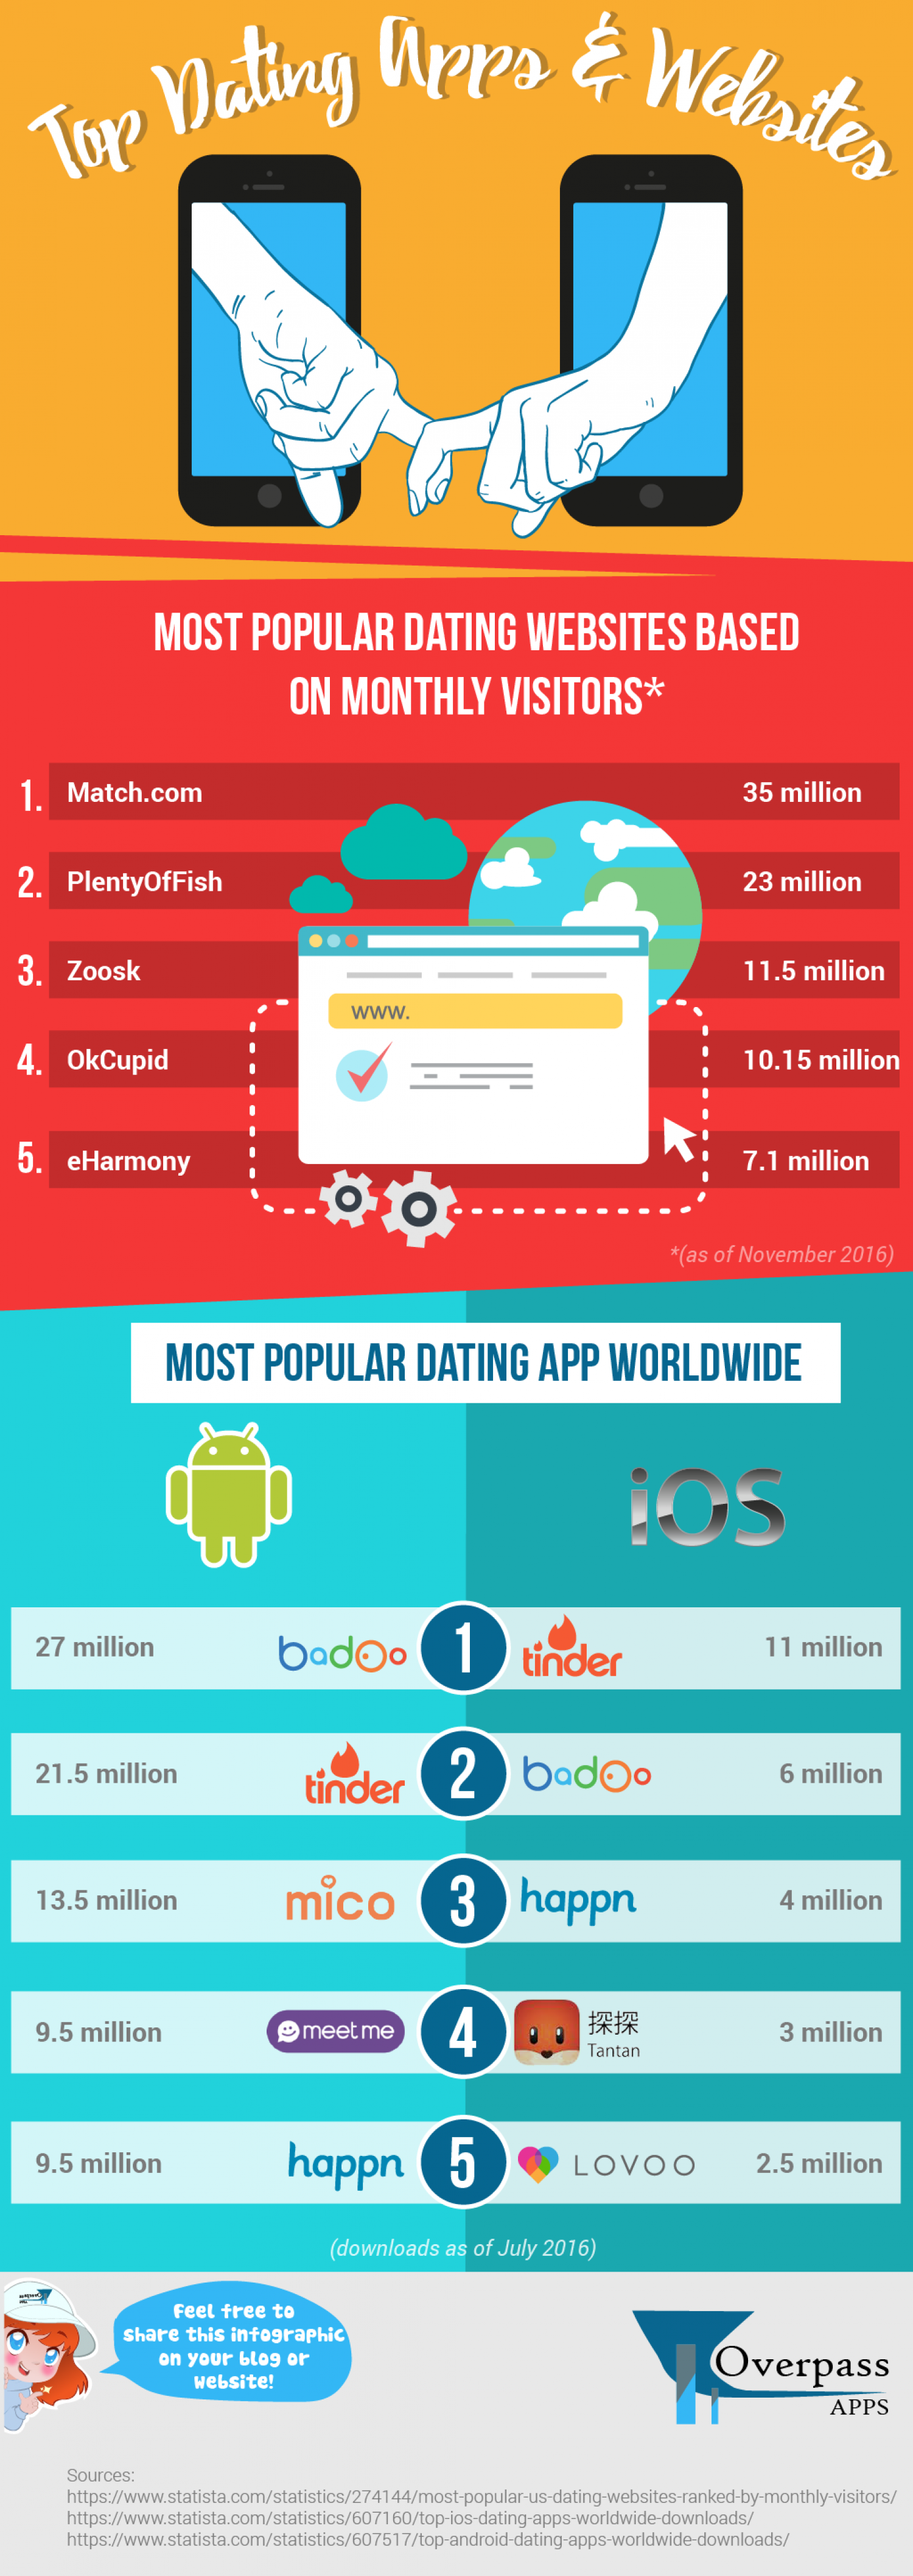 Top Dating Apps and Websites Infographic